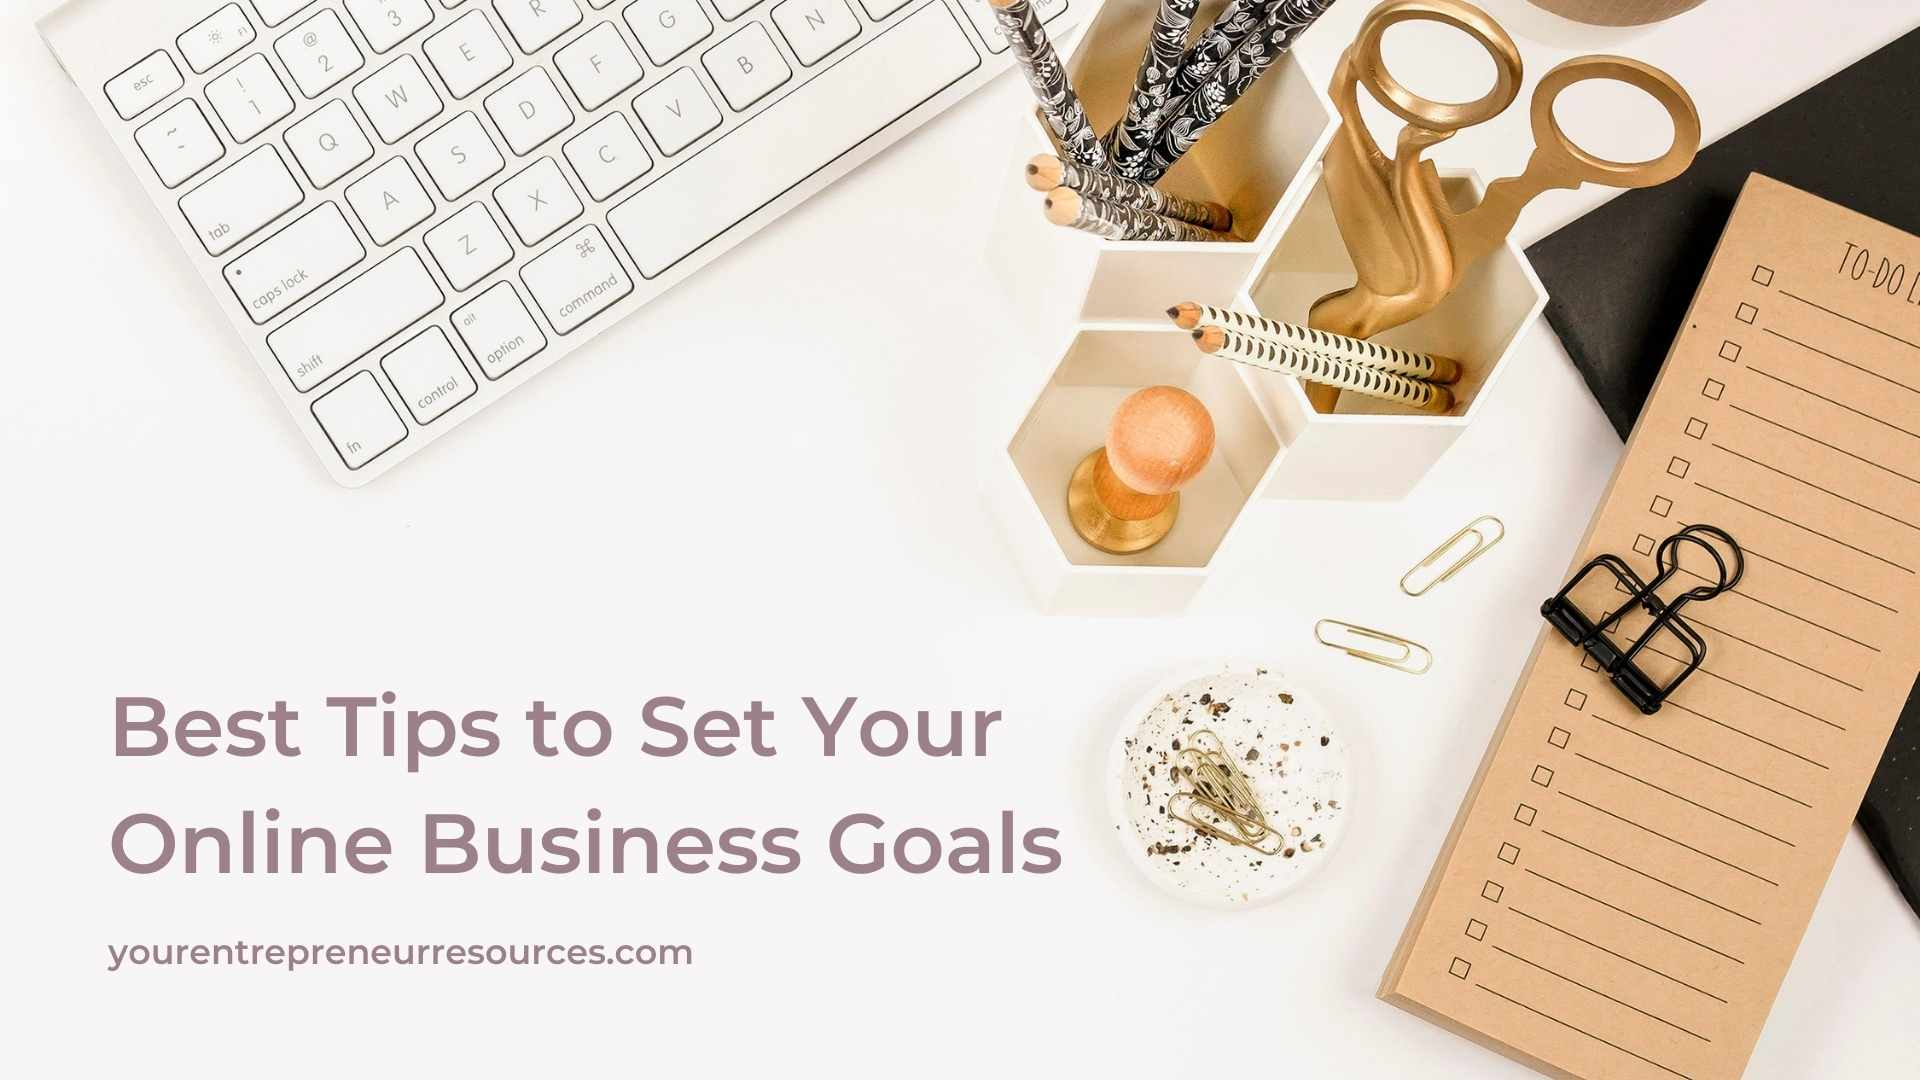 Best tips to set your online business goals for 2021